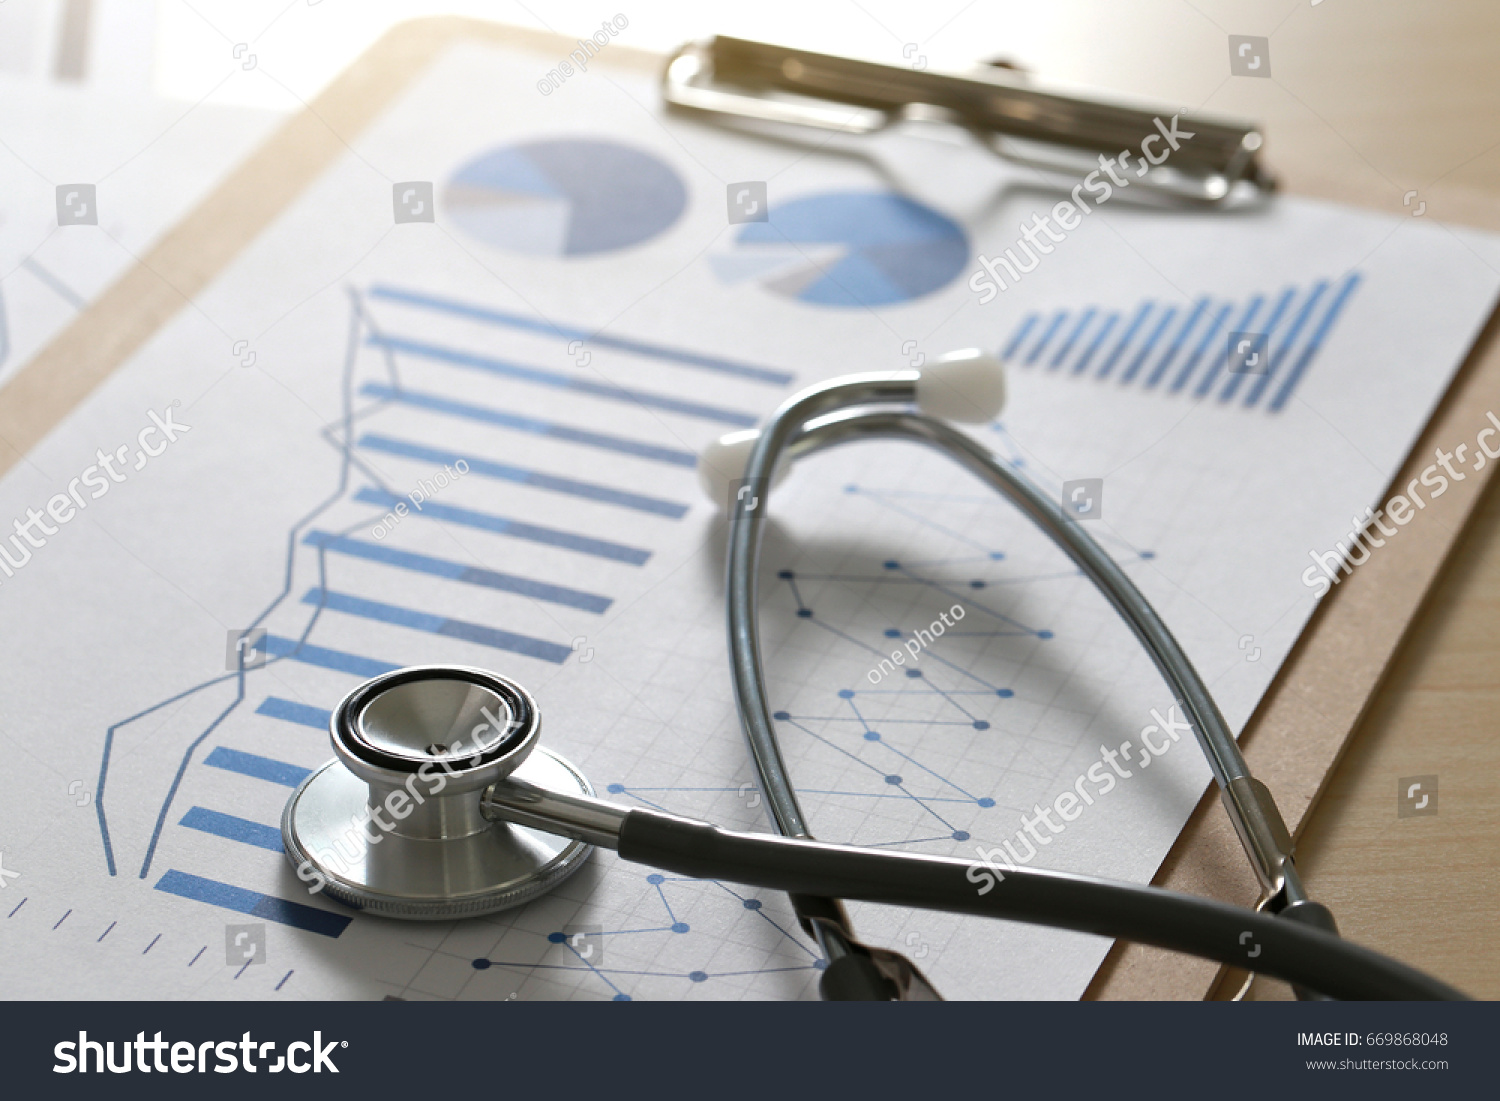 stock-photo-financial-report-chart-and-calculator-medical-report-and-stethoscope-669868048